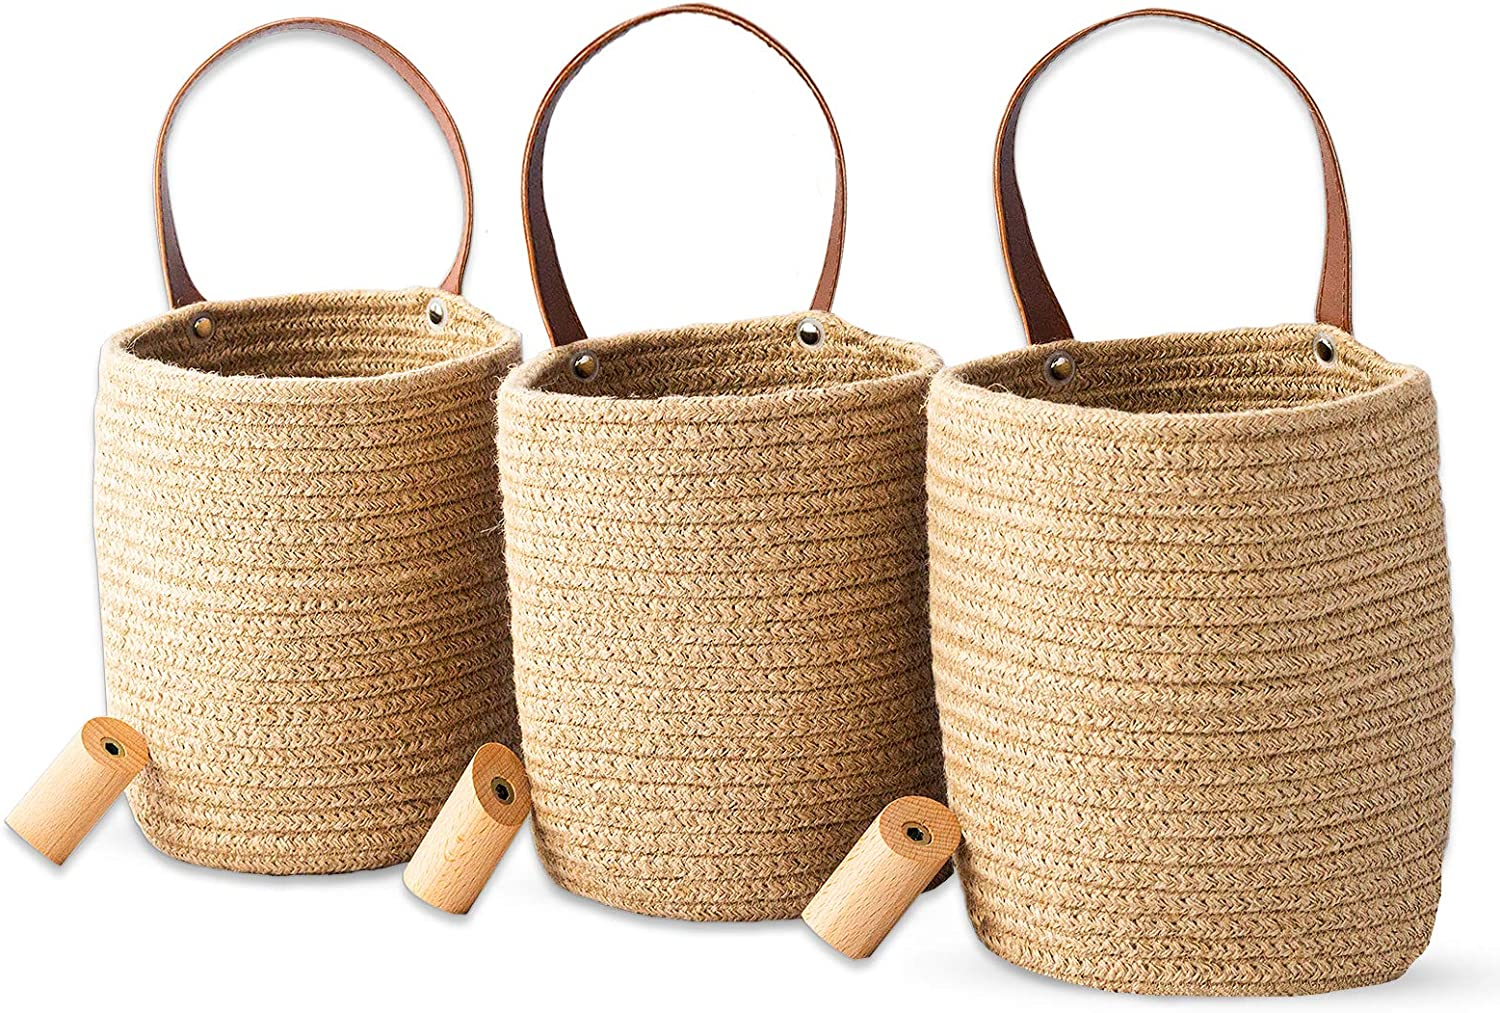 Woven Hanging Baskets and Wooden Hooks Set of 3 - Small Hanging Baskets for Wall décor Hanging Storage Baskets – Jute Woven Hanging Wall Baskets, Organizer